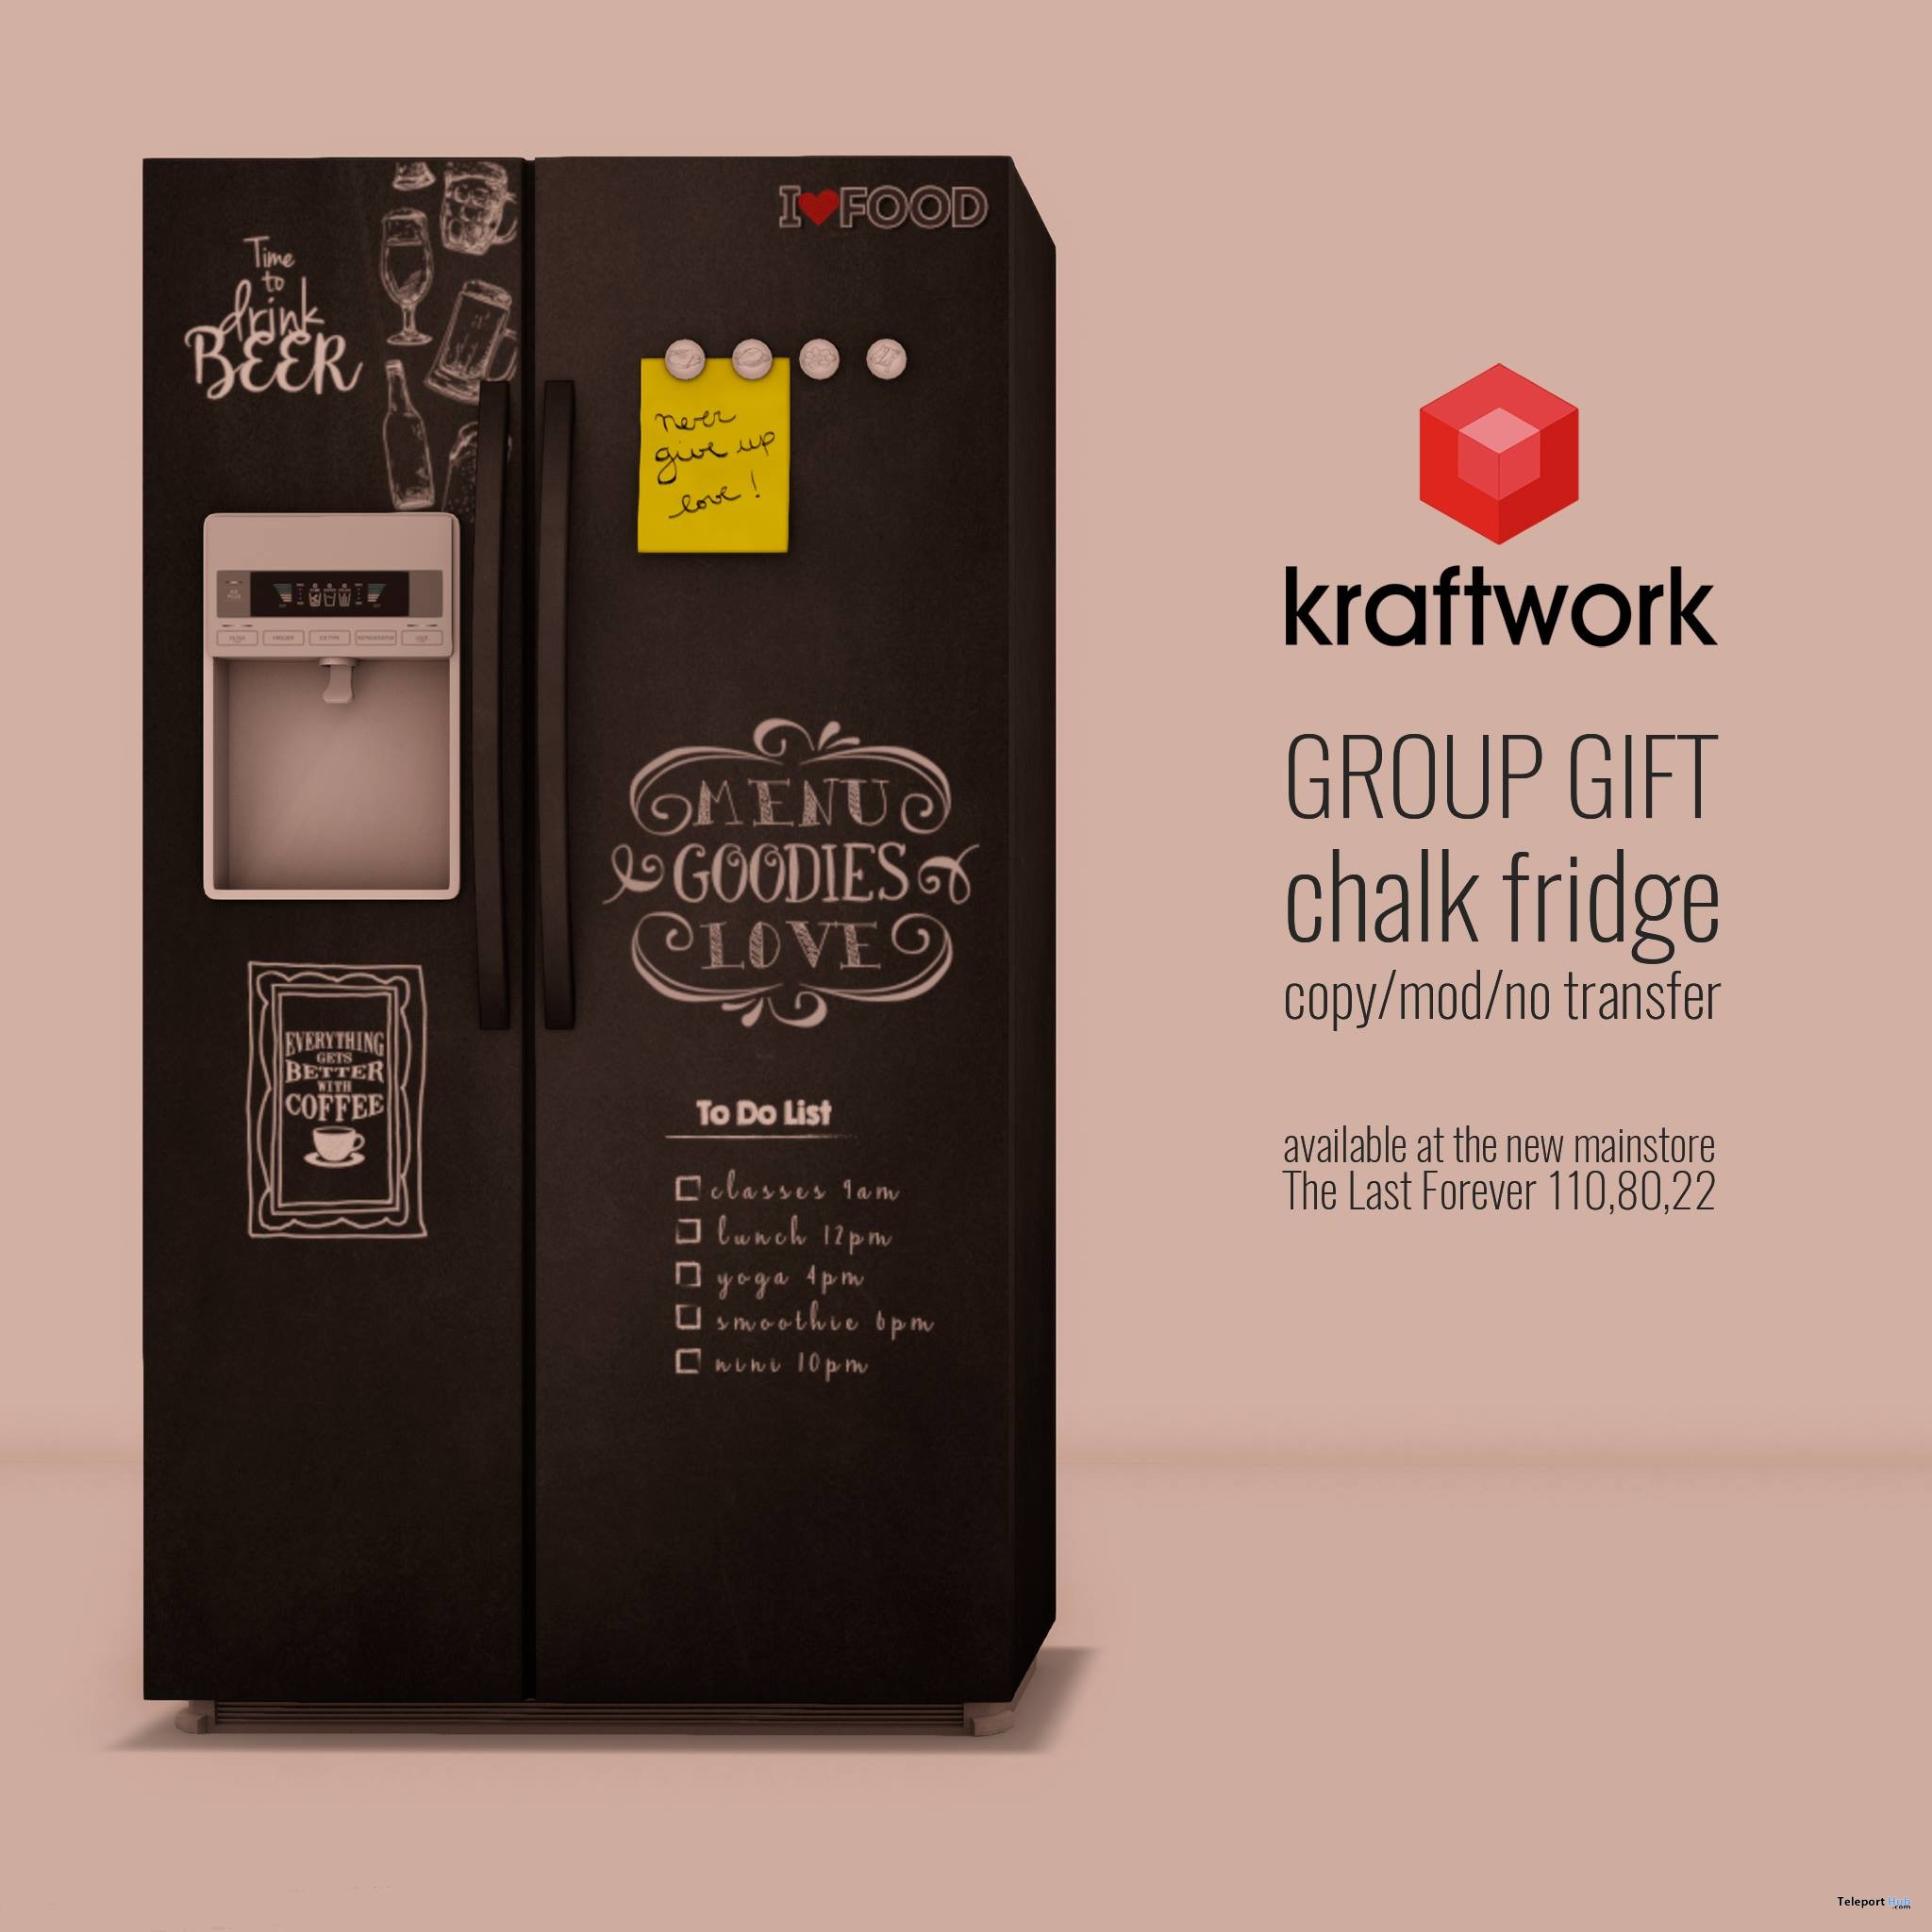 Chalk Fridge September 2017 Group Gift by KraftWork - Teleport Hub - teleporthub.com